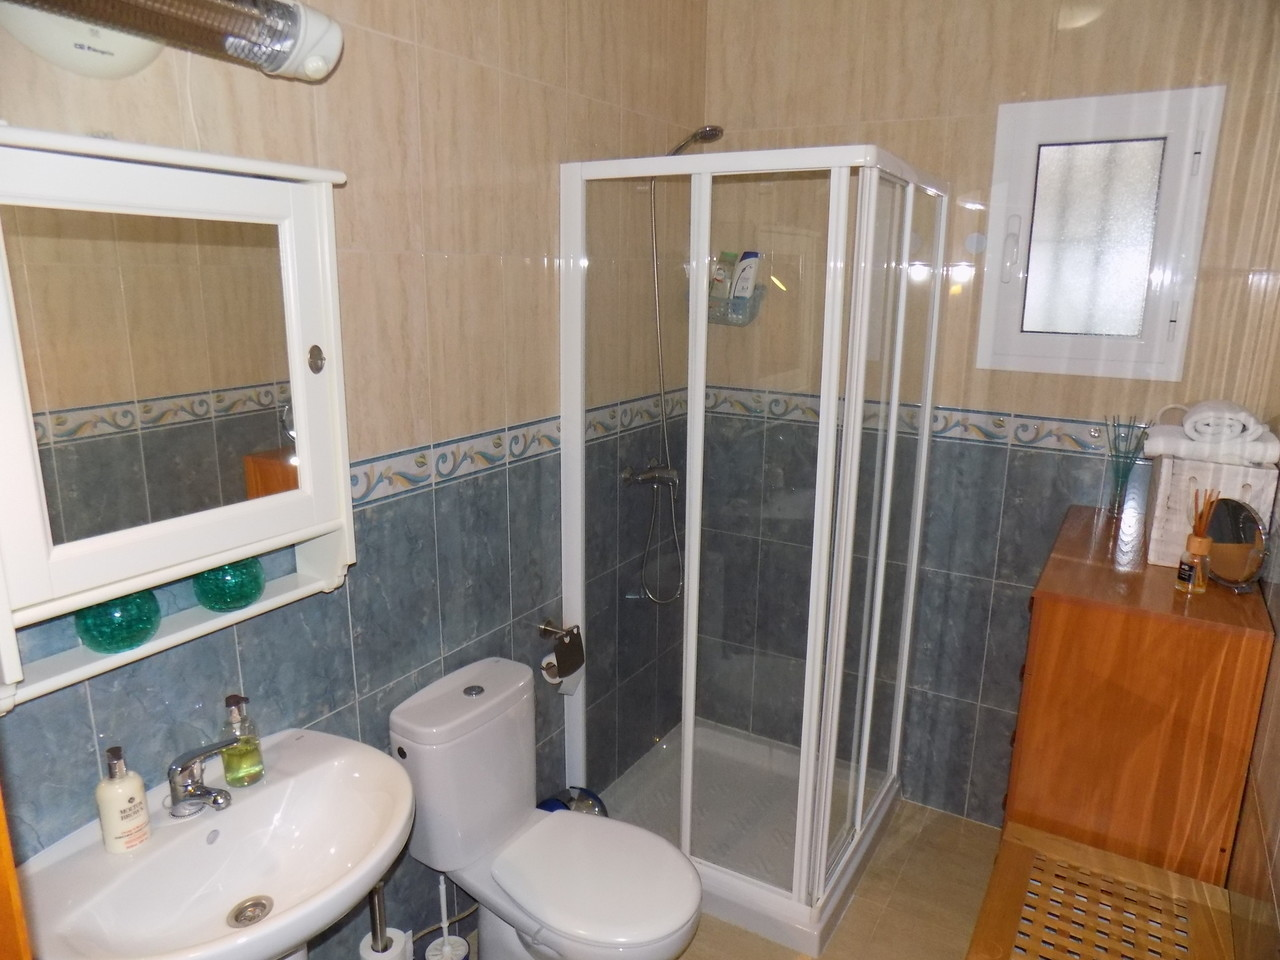 Propery For Sale in Huércal-Overa, Spain image 11